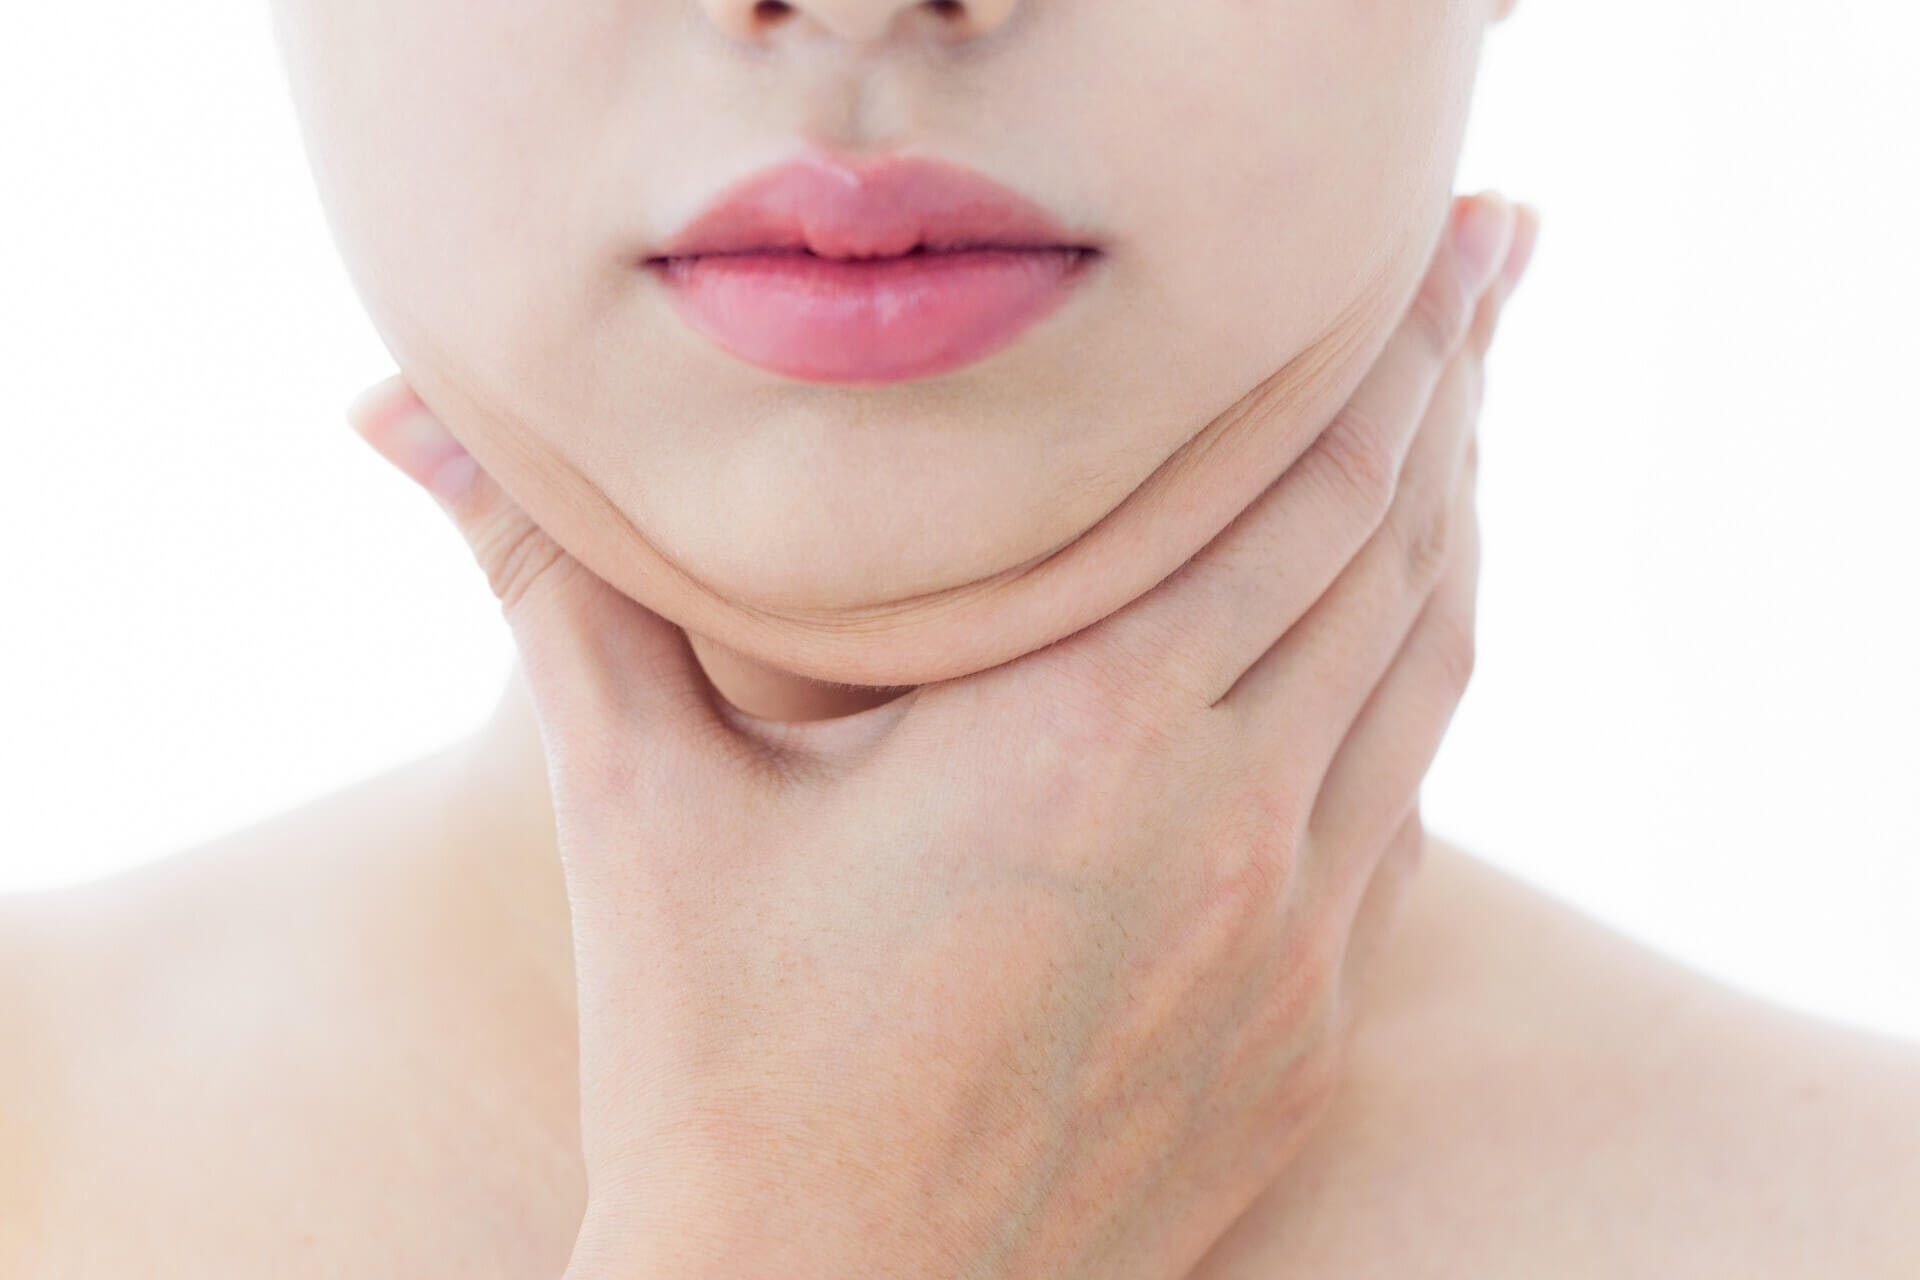 Liposuction vs. Kybella in Minneapolis: Remove Chin Fat Safely With This Alternative